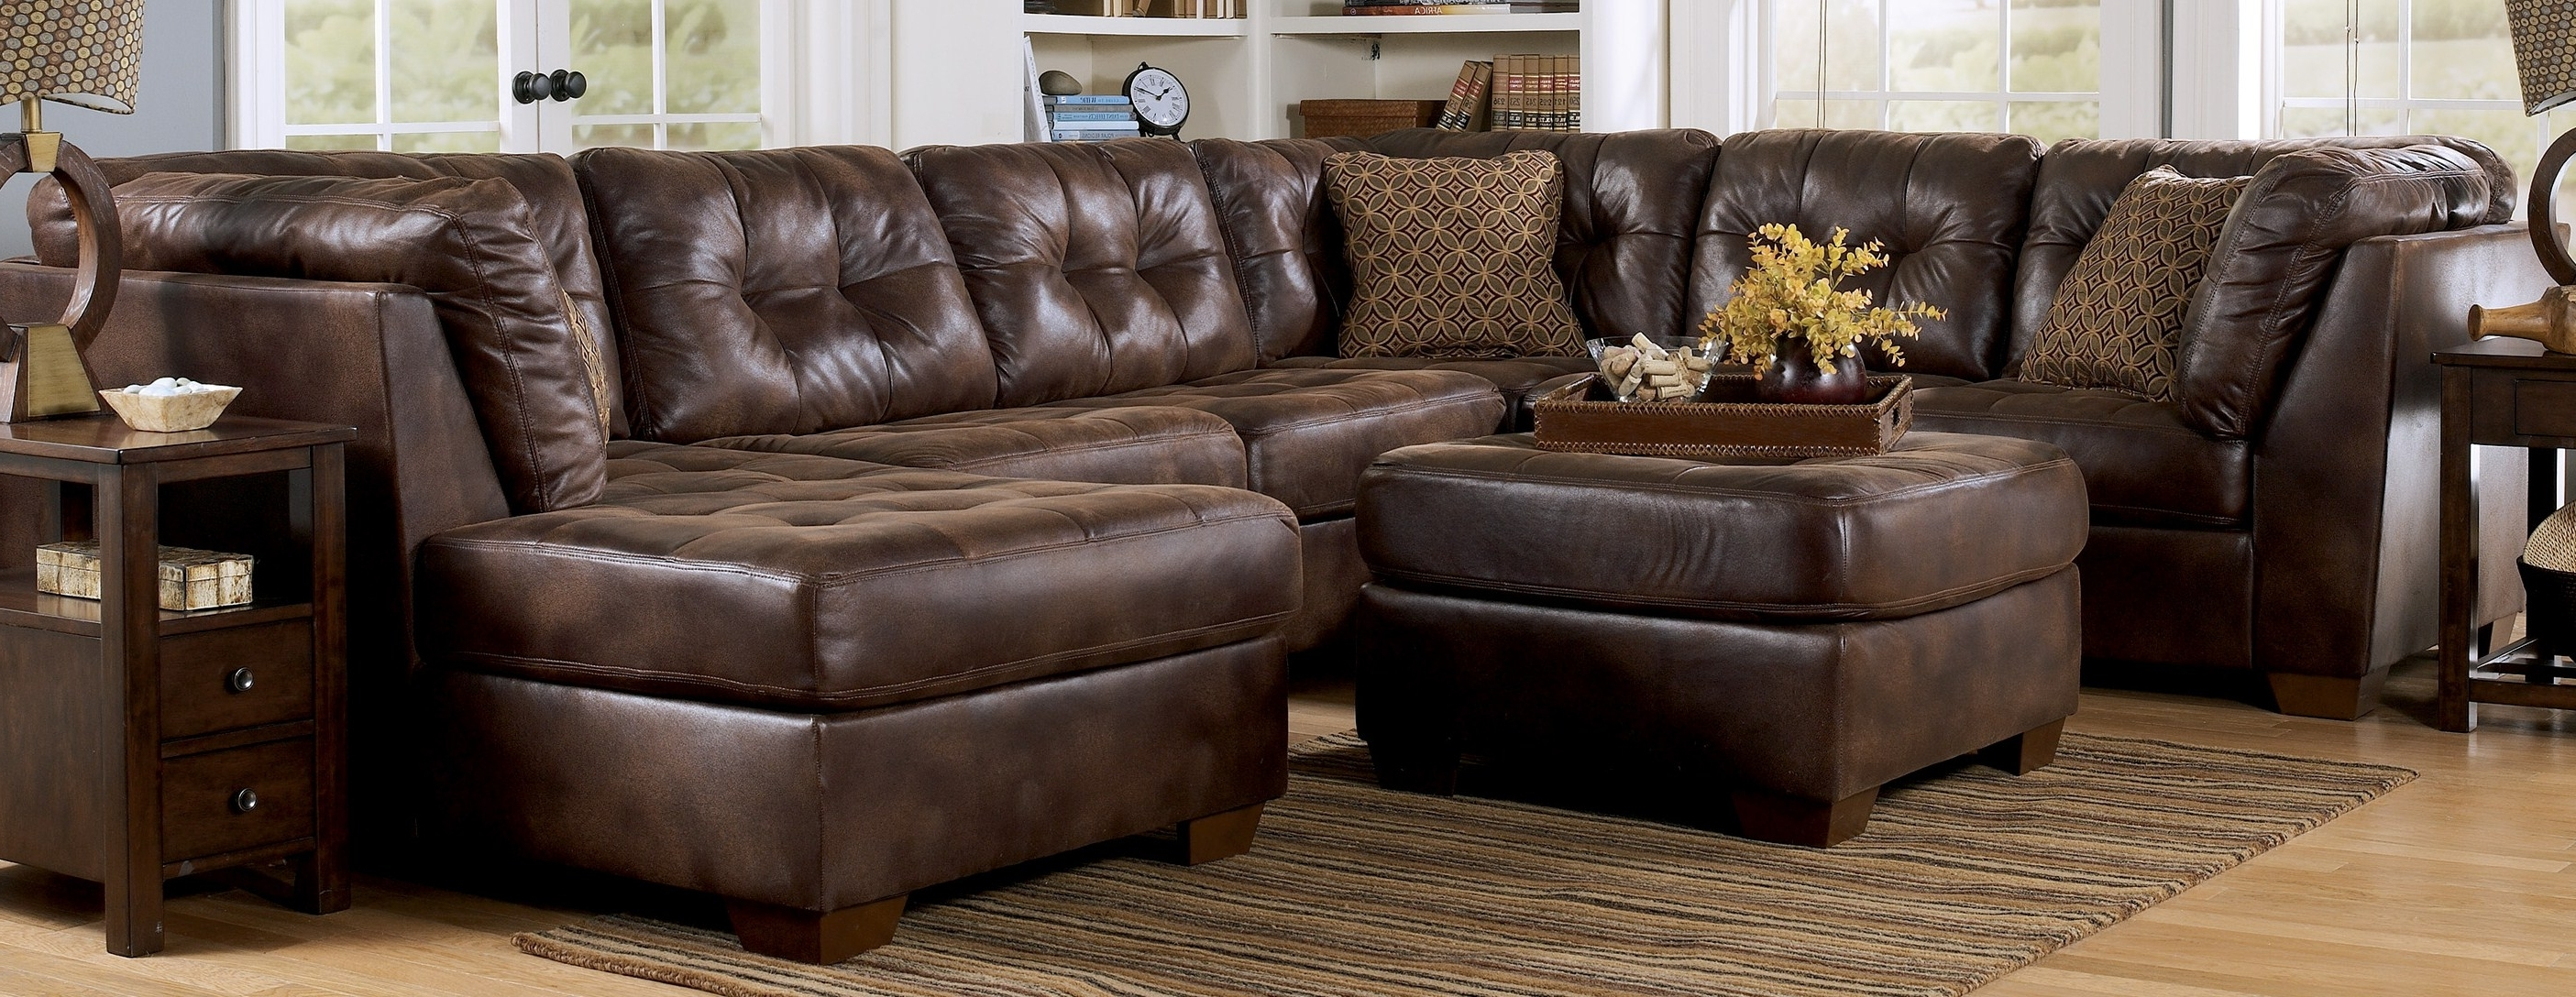 Most Up To Date Leather Sectional Sofas With Ottoman Pertaining To My Parents Have This Couch, And Now We're Saving For It! Its Sooo (View 13 of 15)